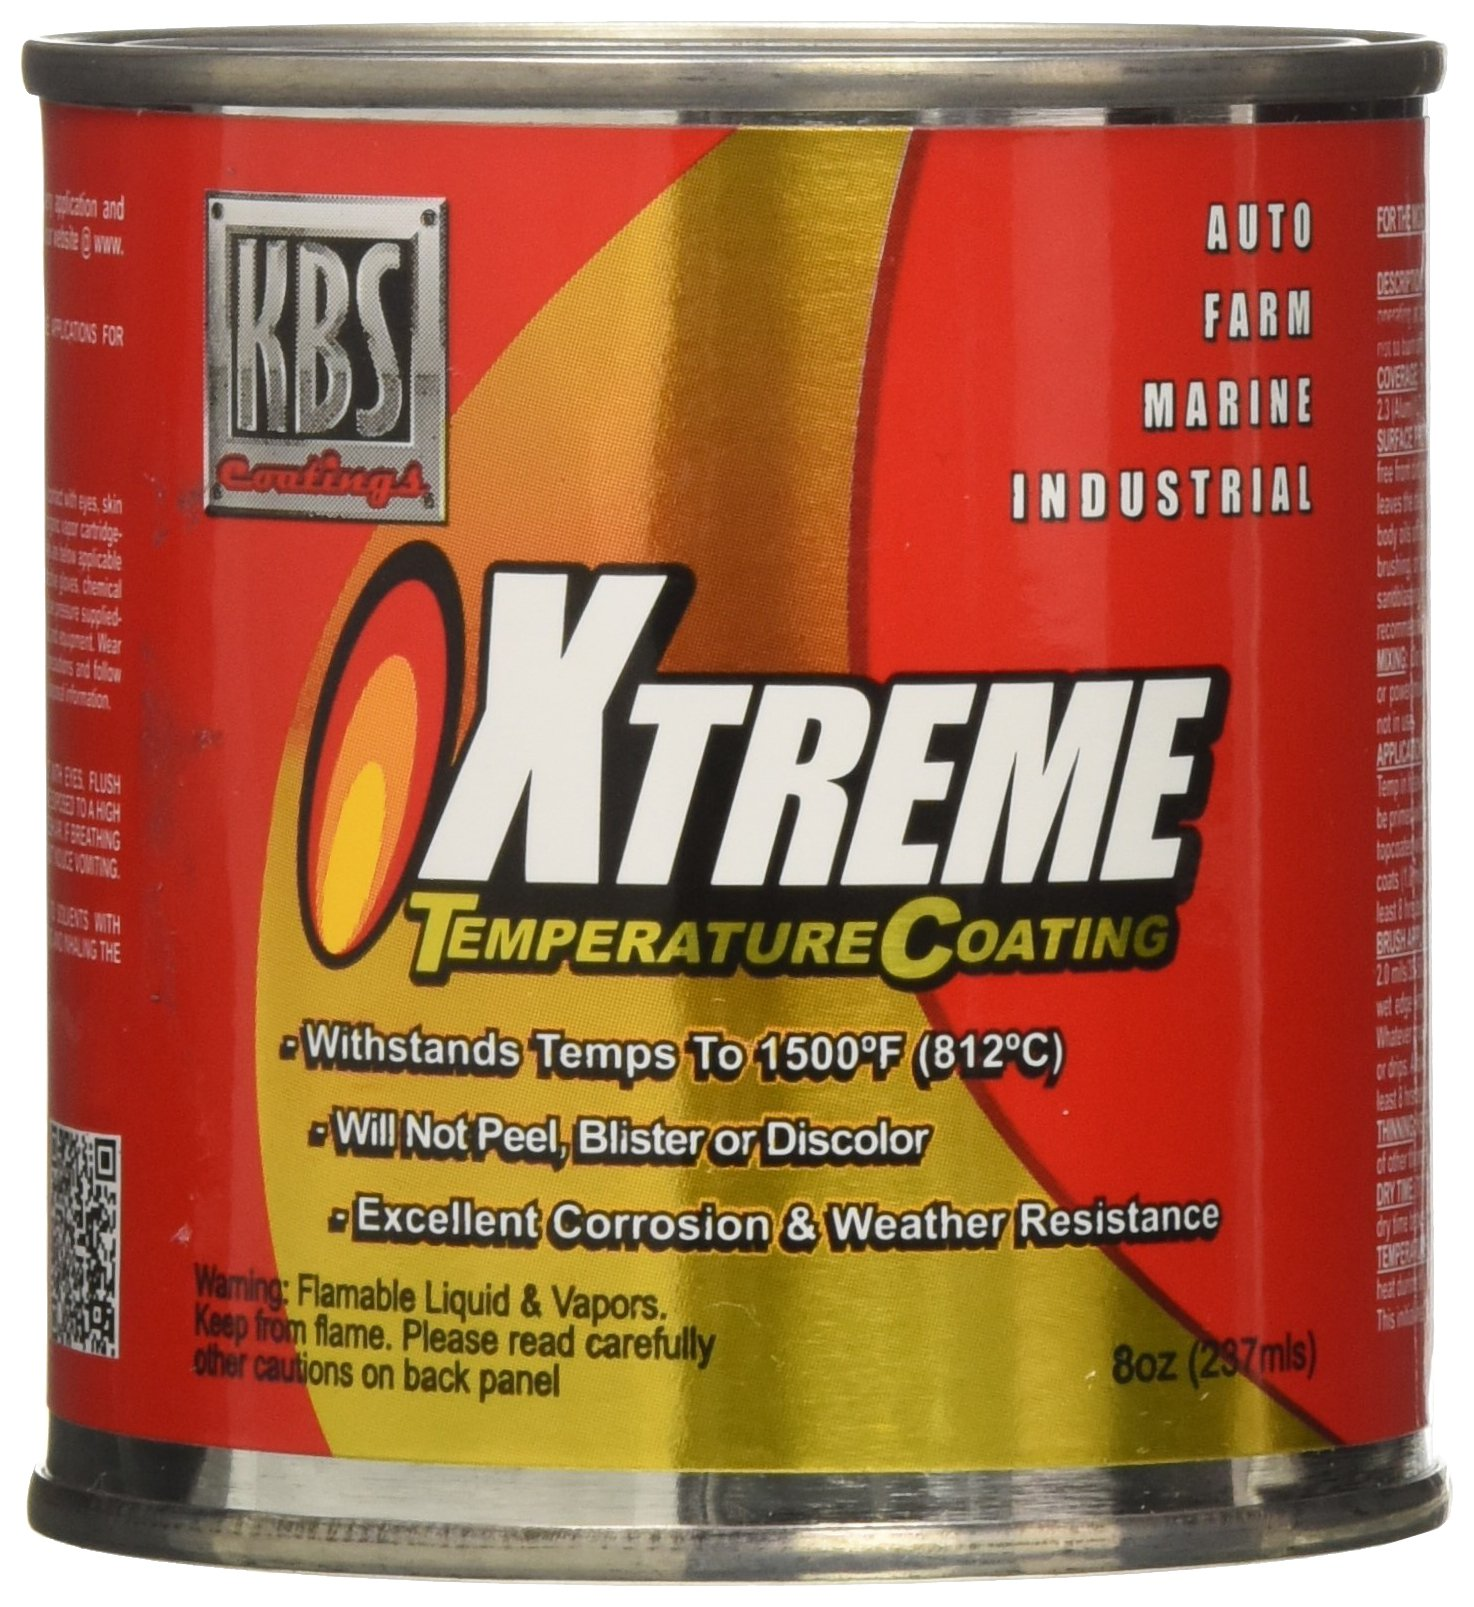 KBS Coatings 65225 Charcoal Metallic Xtreme Temperature Coating - 8 fl. oz.